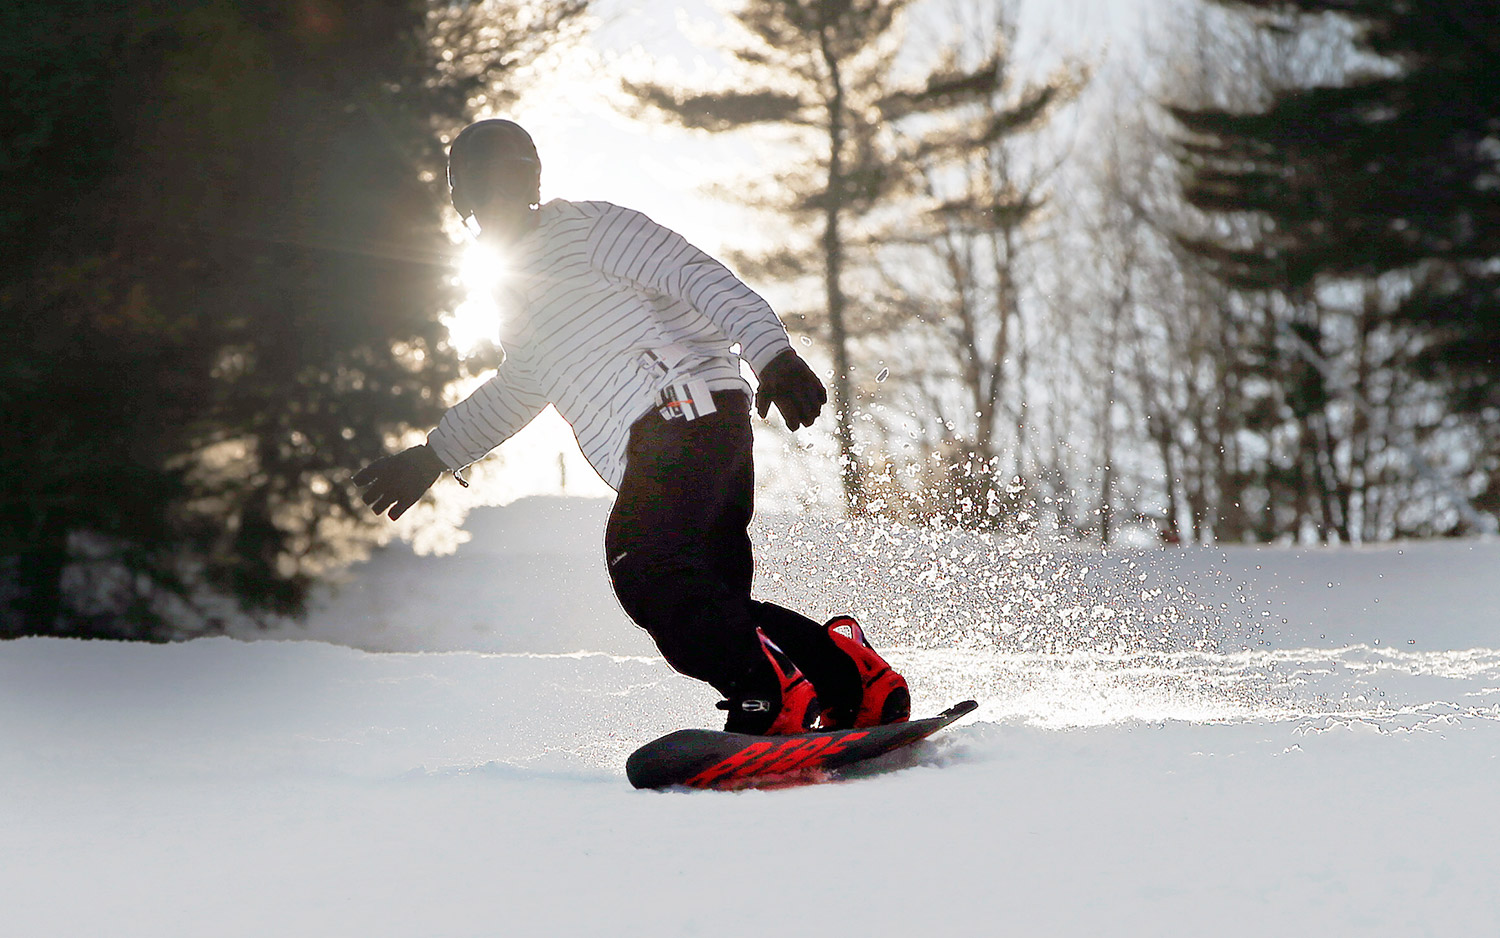 A snowboarder takes a run at Shawnee Peak in Bridgton on Tuesday. Ski resort managers are cautiously optimistic that snowfall totals will beat last winter's. Ben McCanna/Staff Photographer